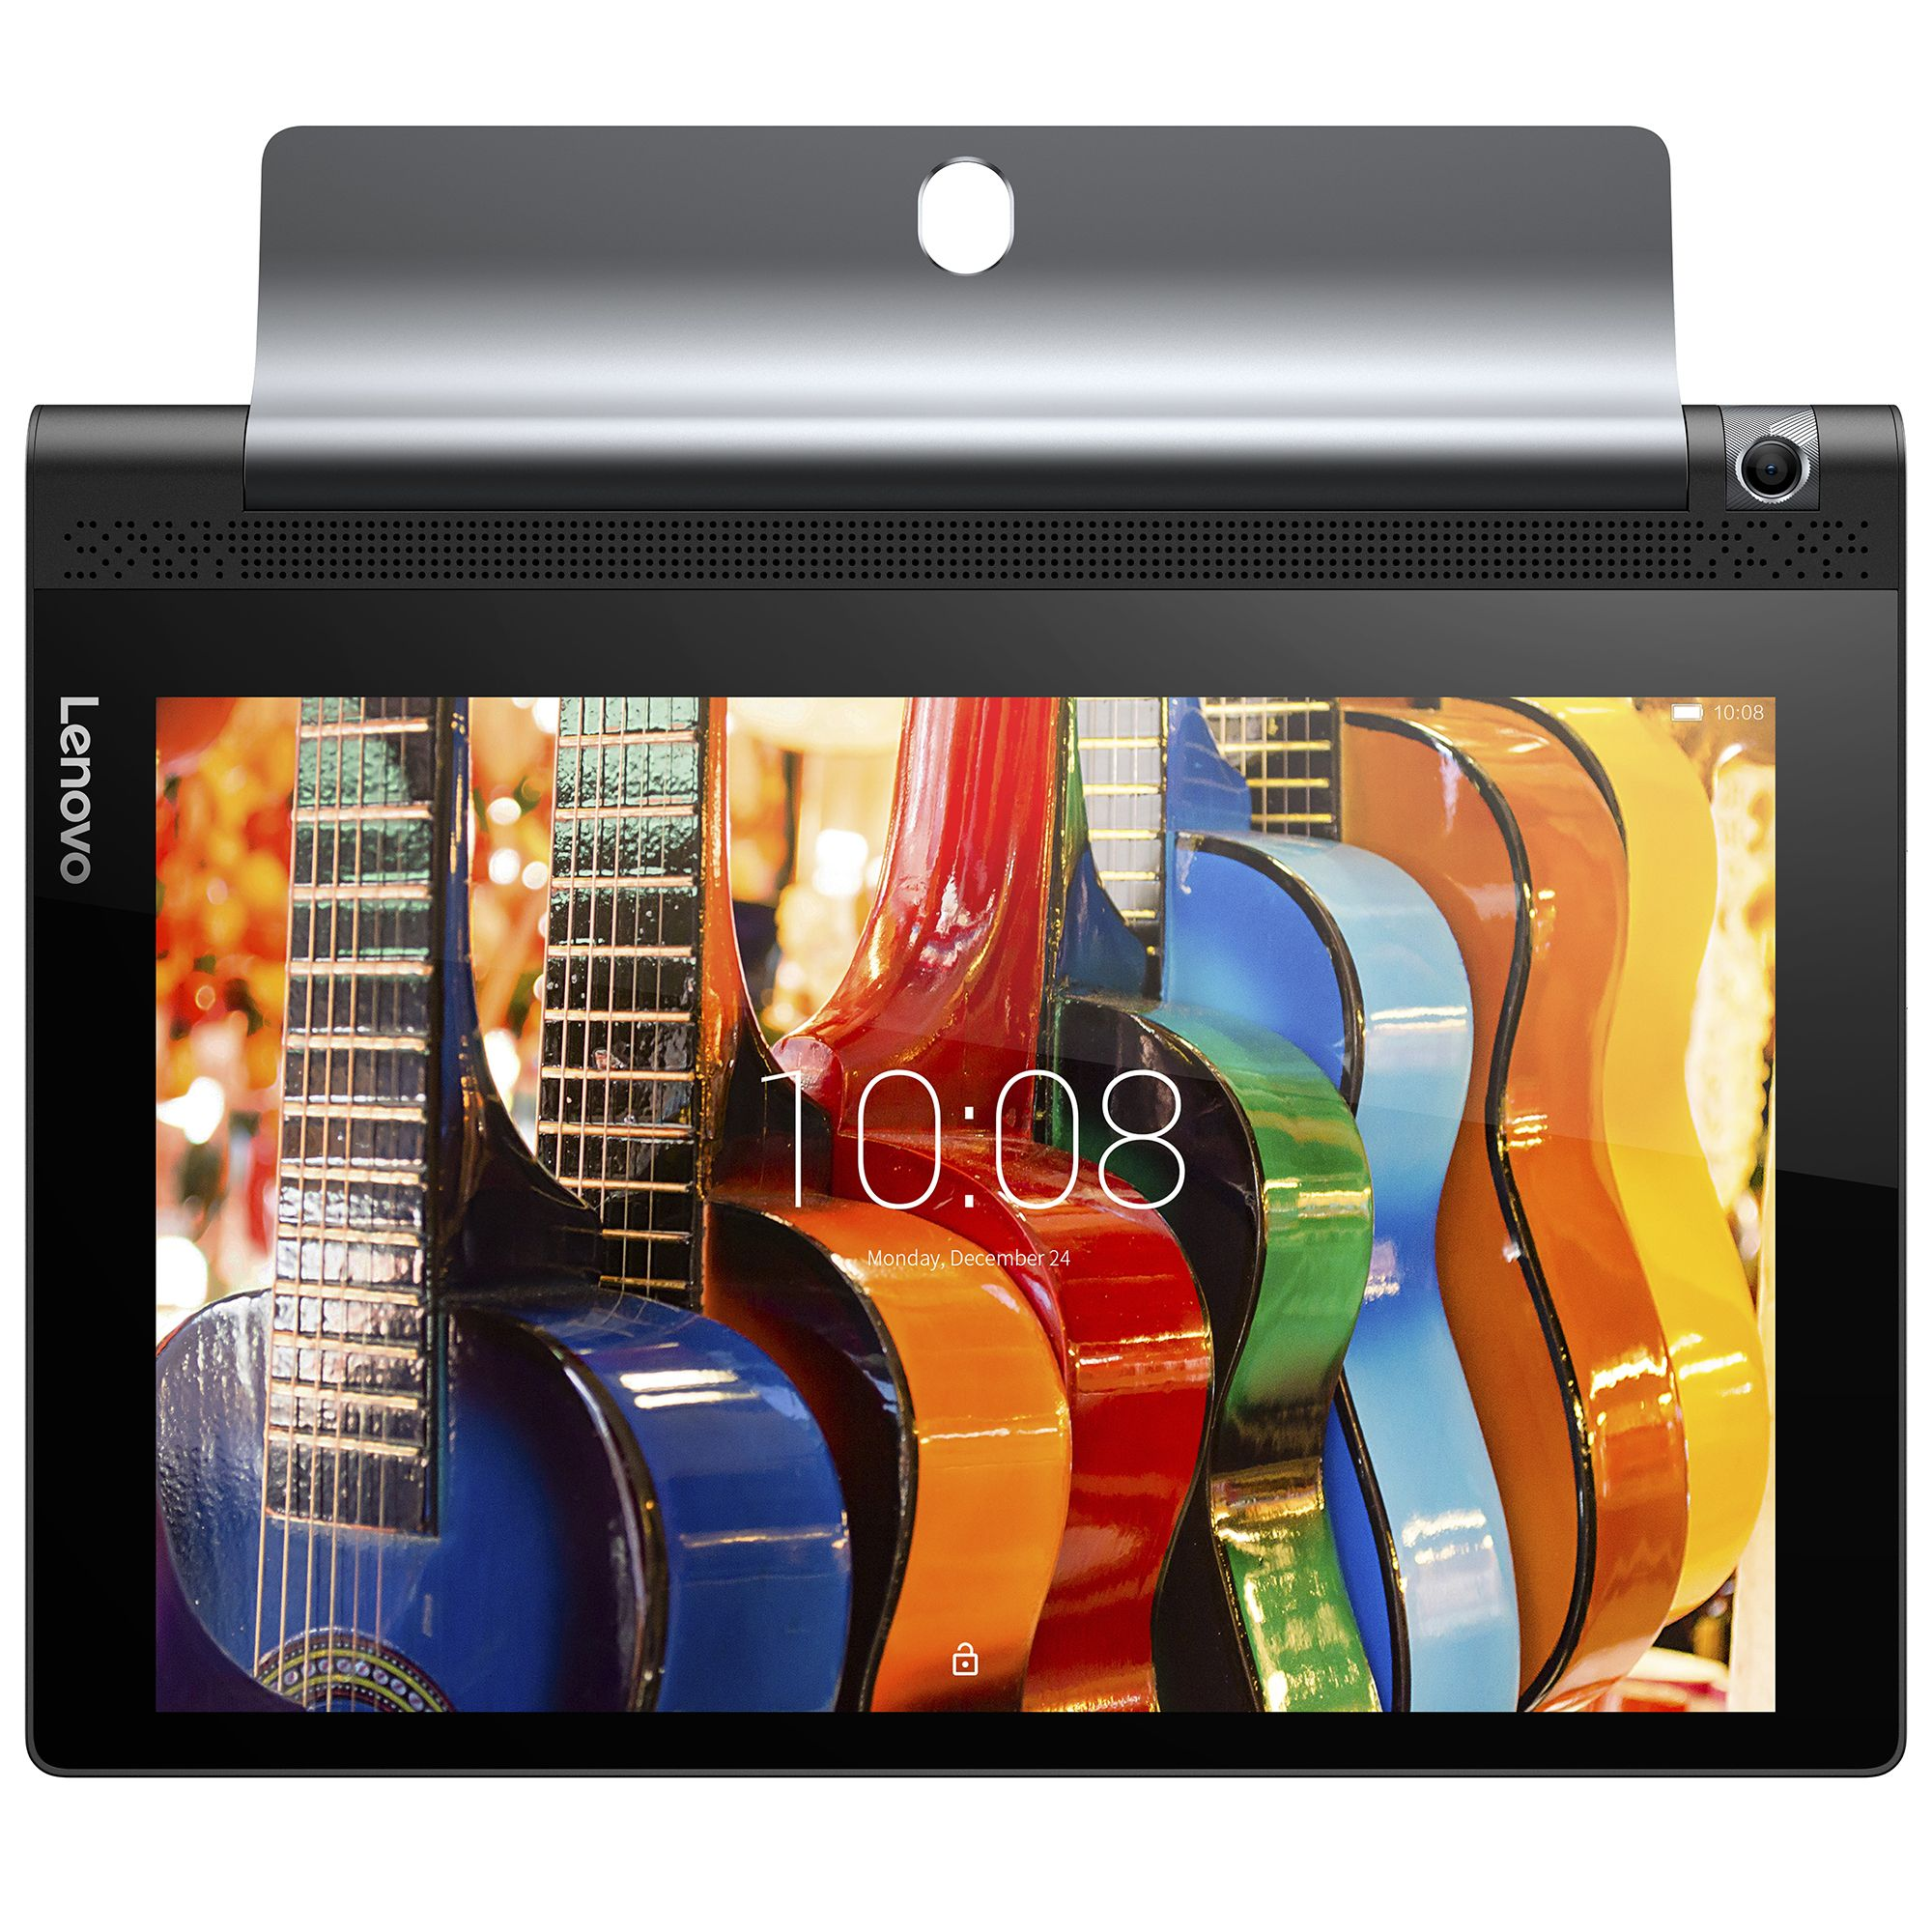 Tableta Lenovo Yoga Tab 3 10.1 16GB Flash 2GB RAM Android 5.1 Black